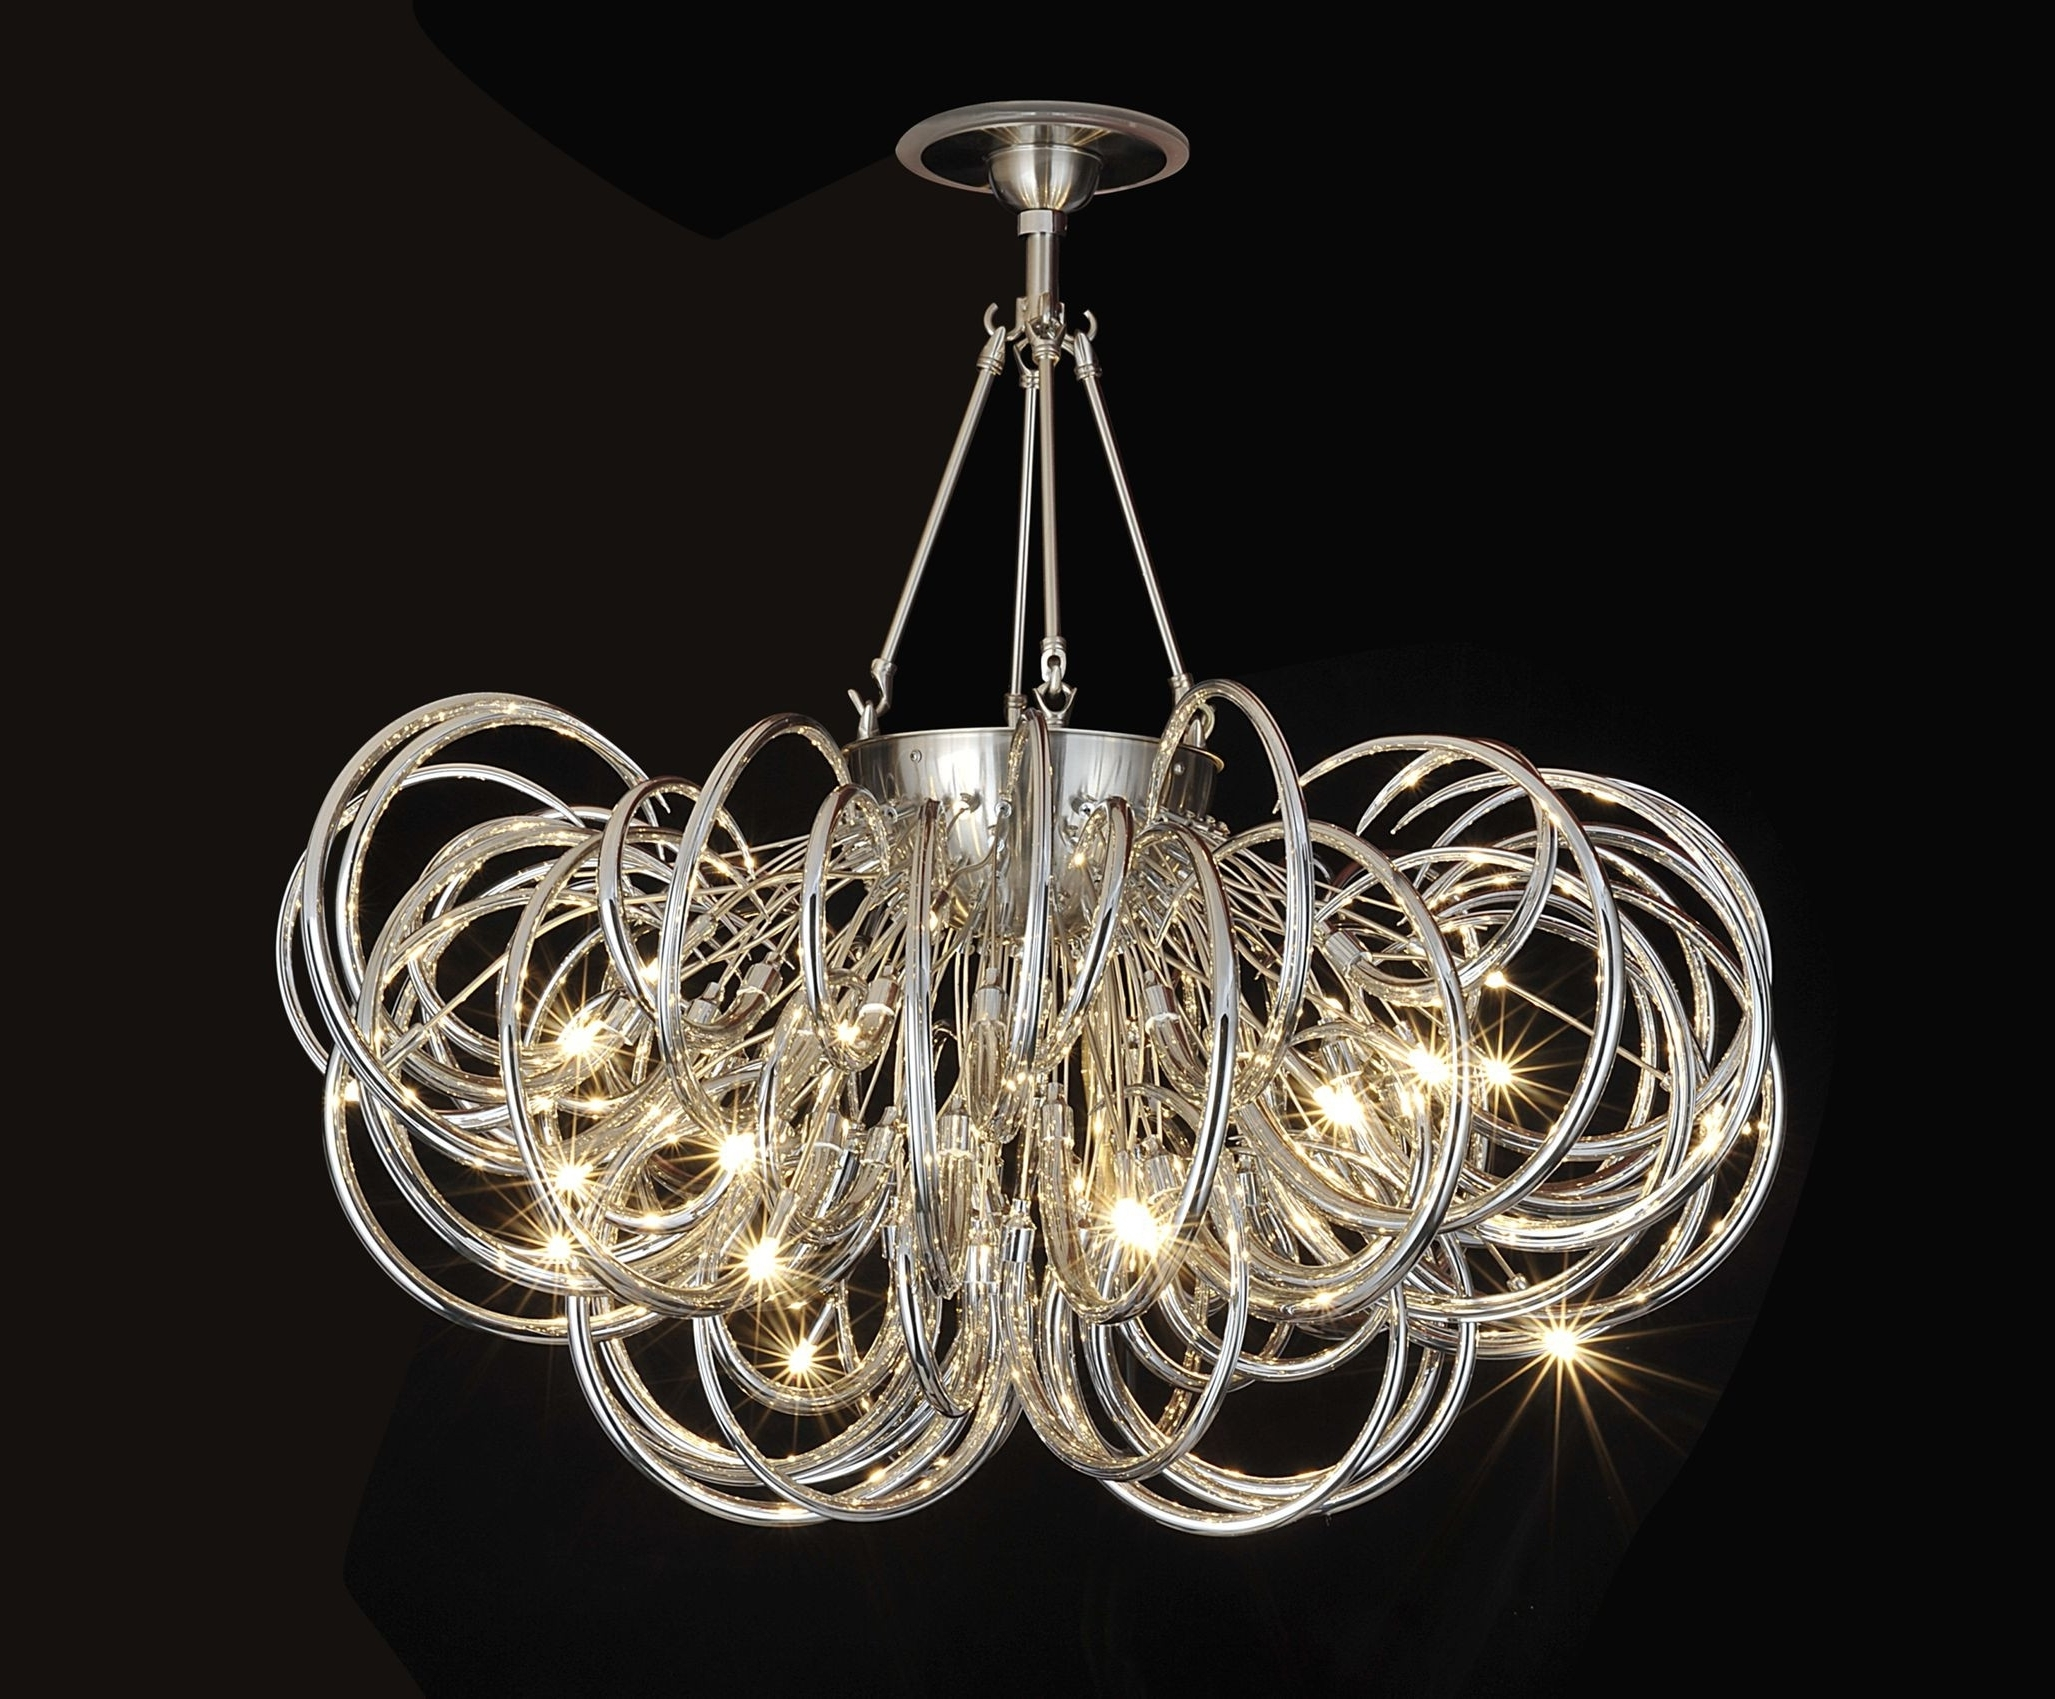 Modern Italian Chandeliers – Chandelier Designs In Preferred Modern Italian Chandeliers (View 11 of 20)